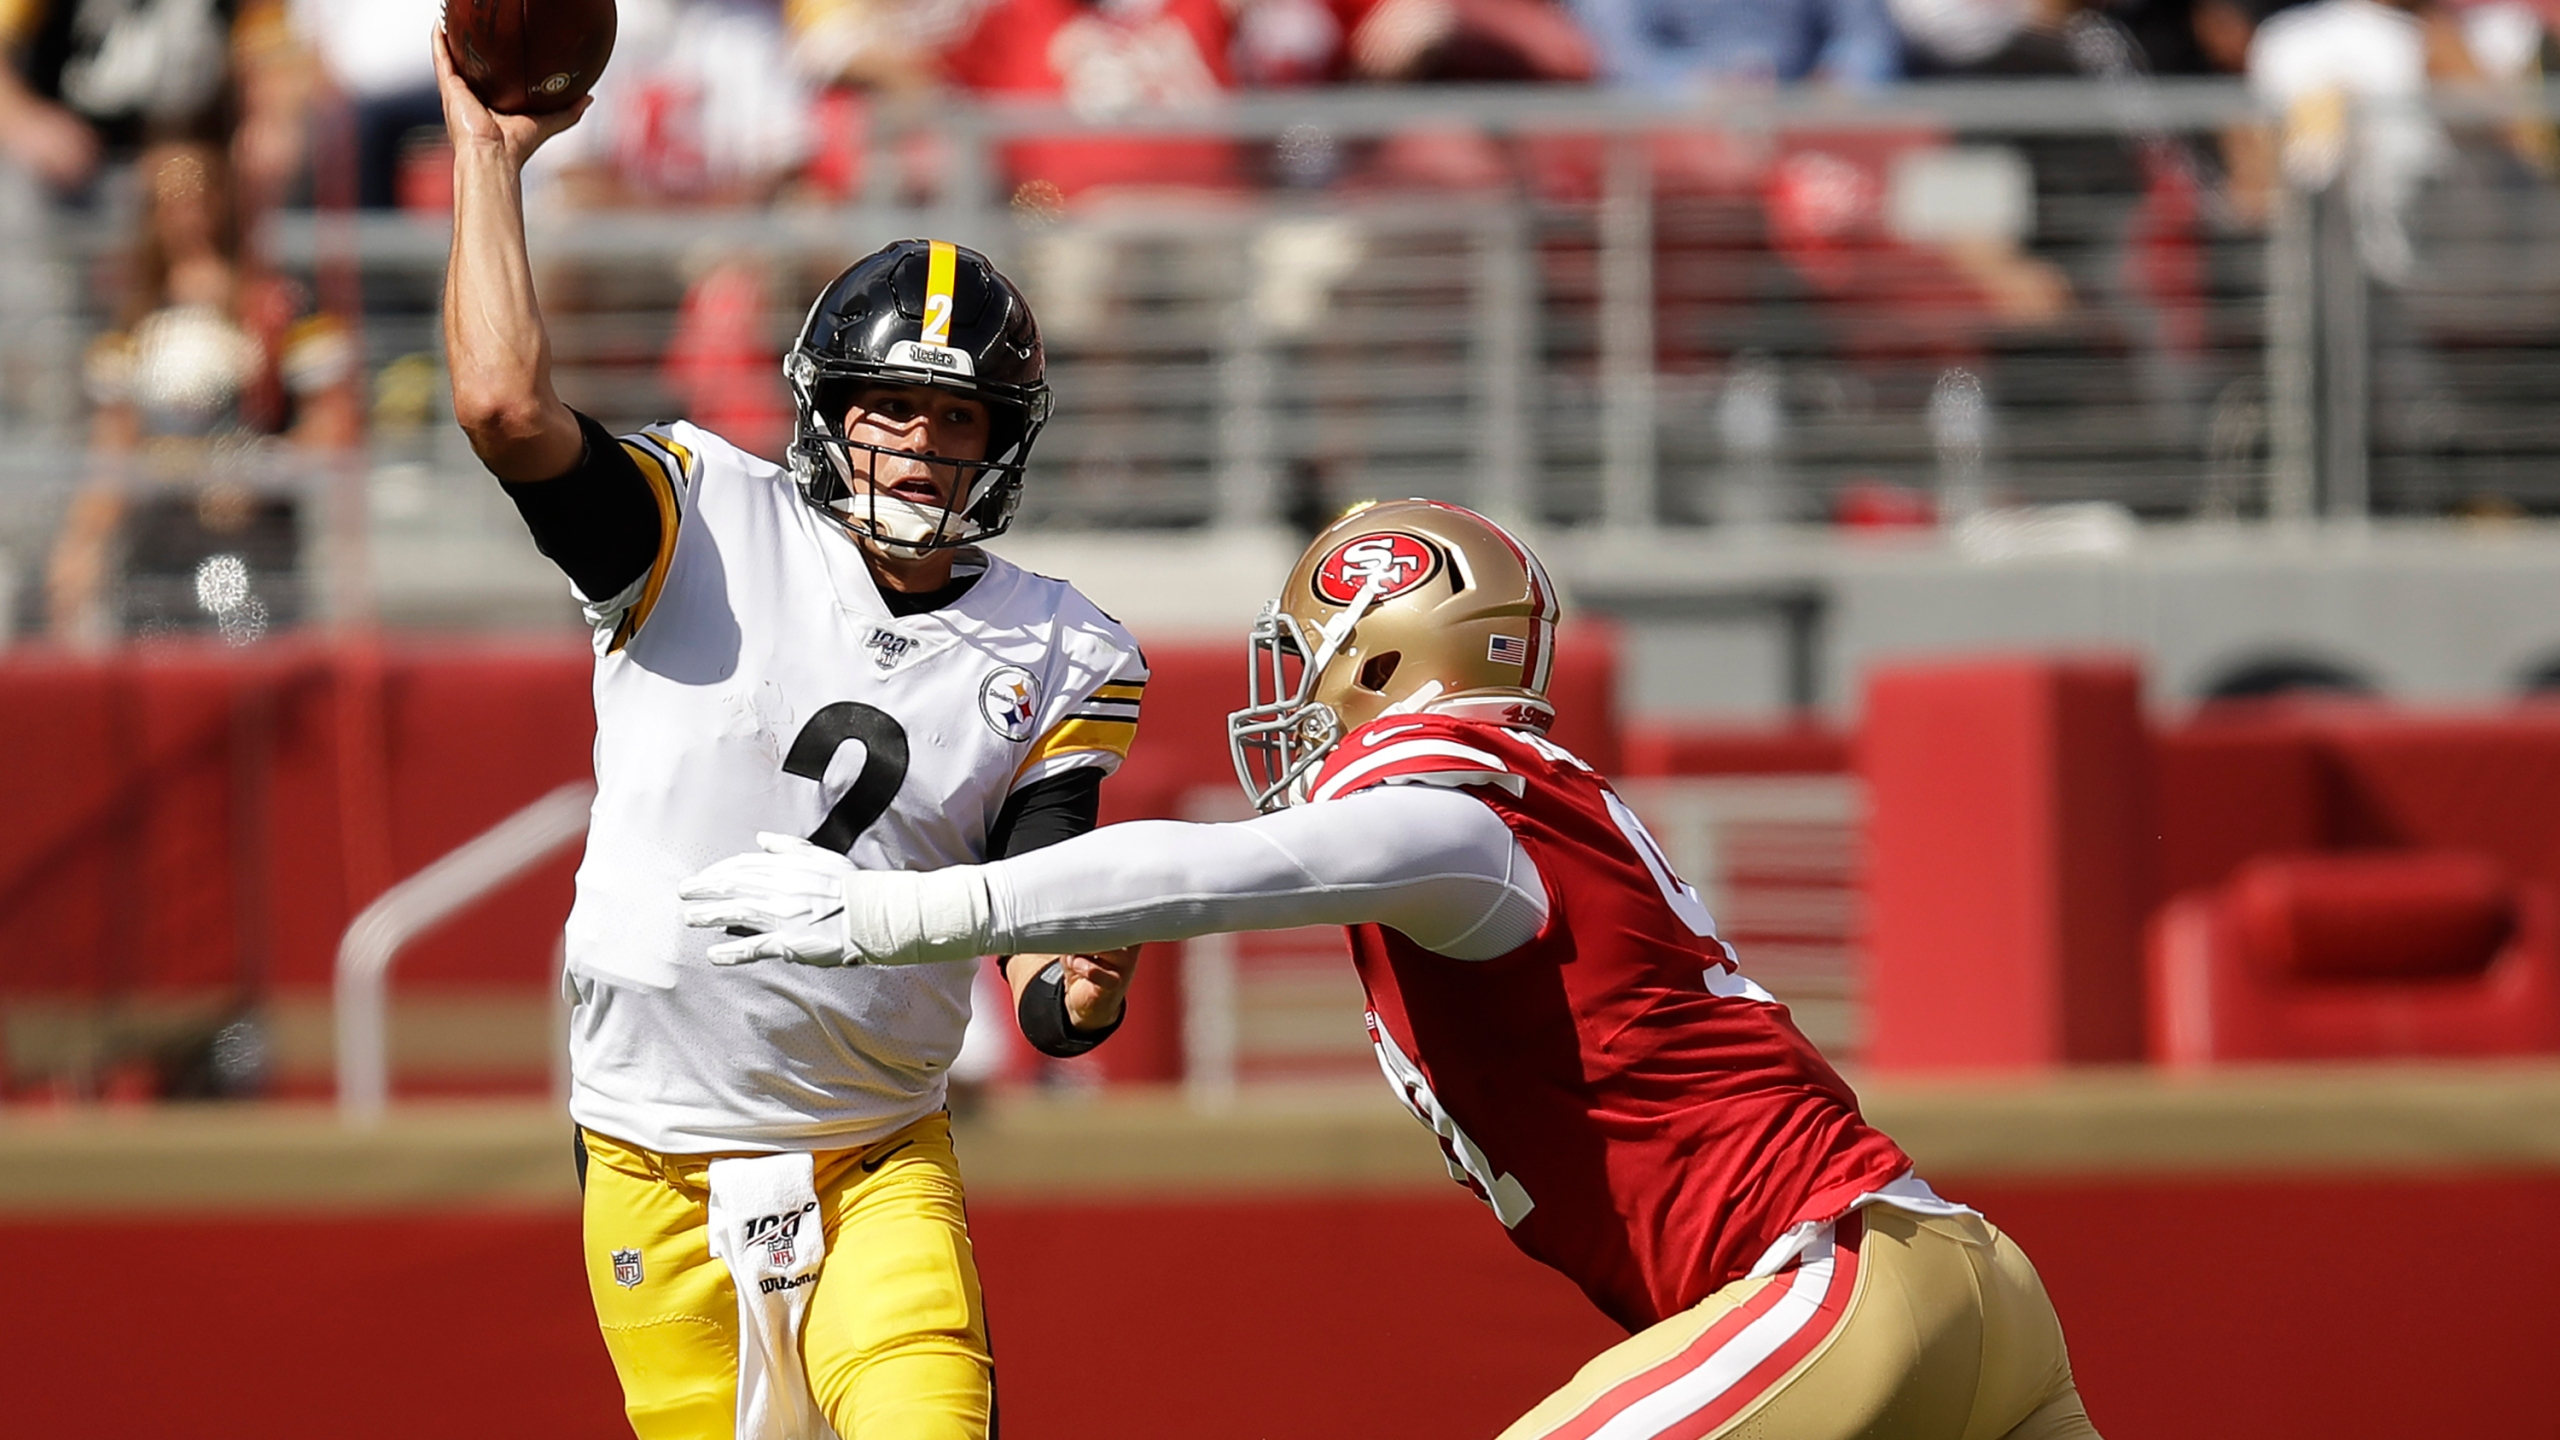 reputable site 3fccf d01d2 Steelers now 0-3 after loss to 49ers